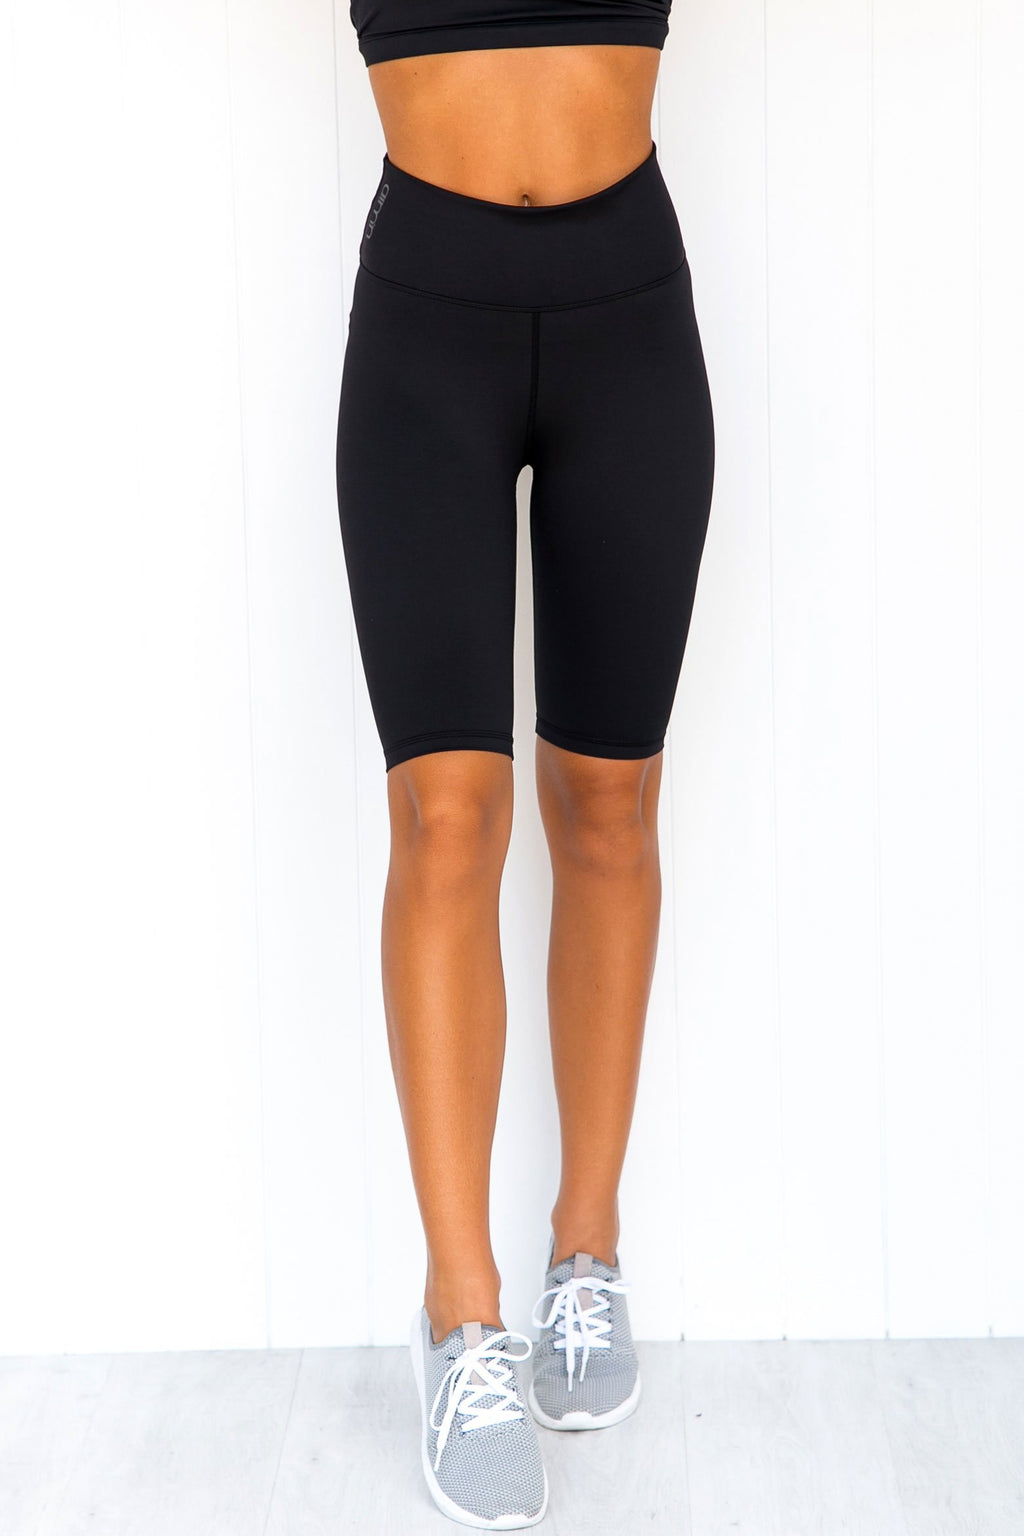 Aim High Biker Shorts - PURE DASH